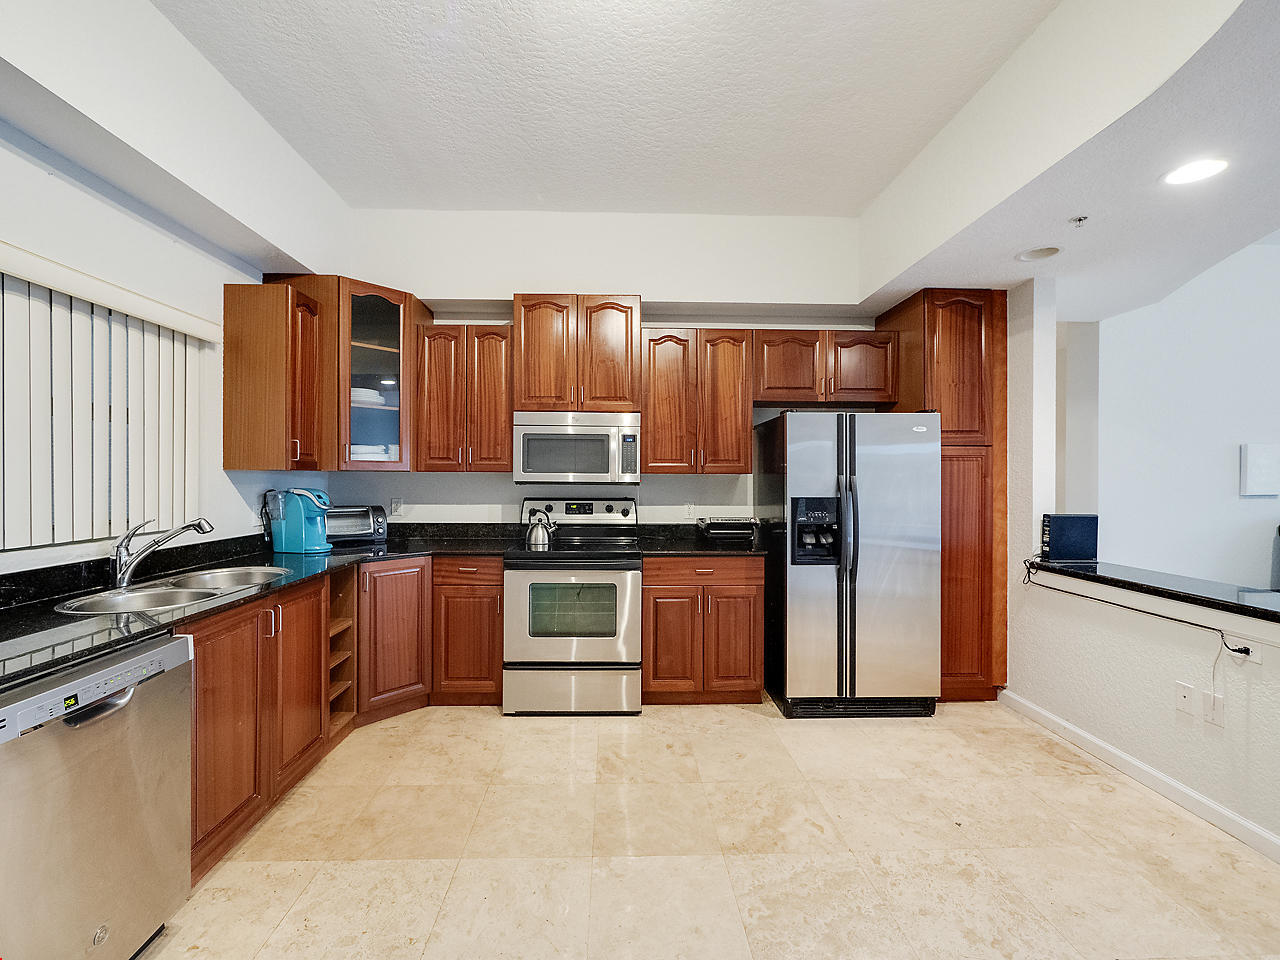 1620 Presidential Way, West Palm Beach, Florida 33401, 3 Bedrooms Bedrooms, ,3 BathroomsBathrooms,Condo/Coop,For Sale,Park Place Condominium,Presidential,1,RX-10500917